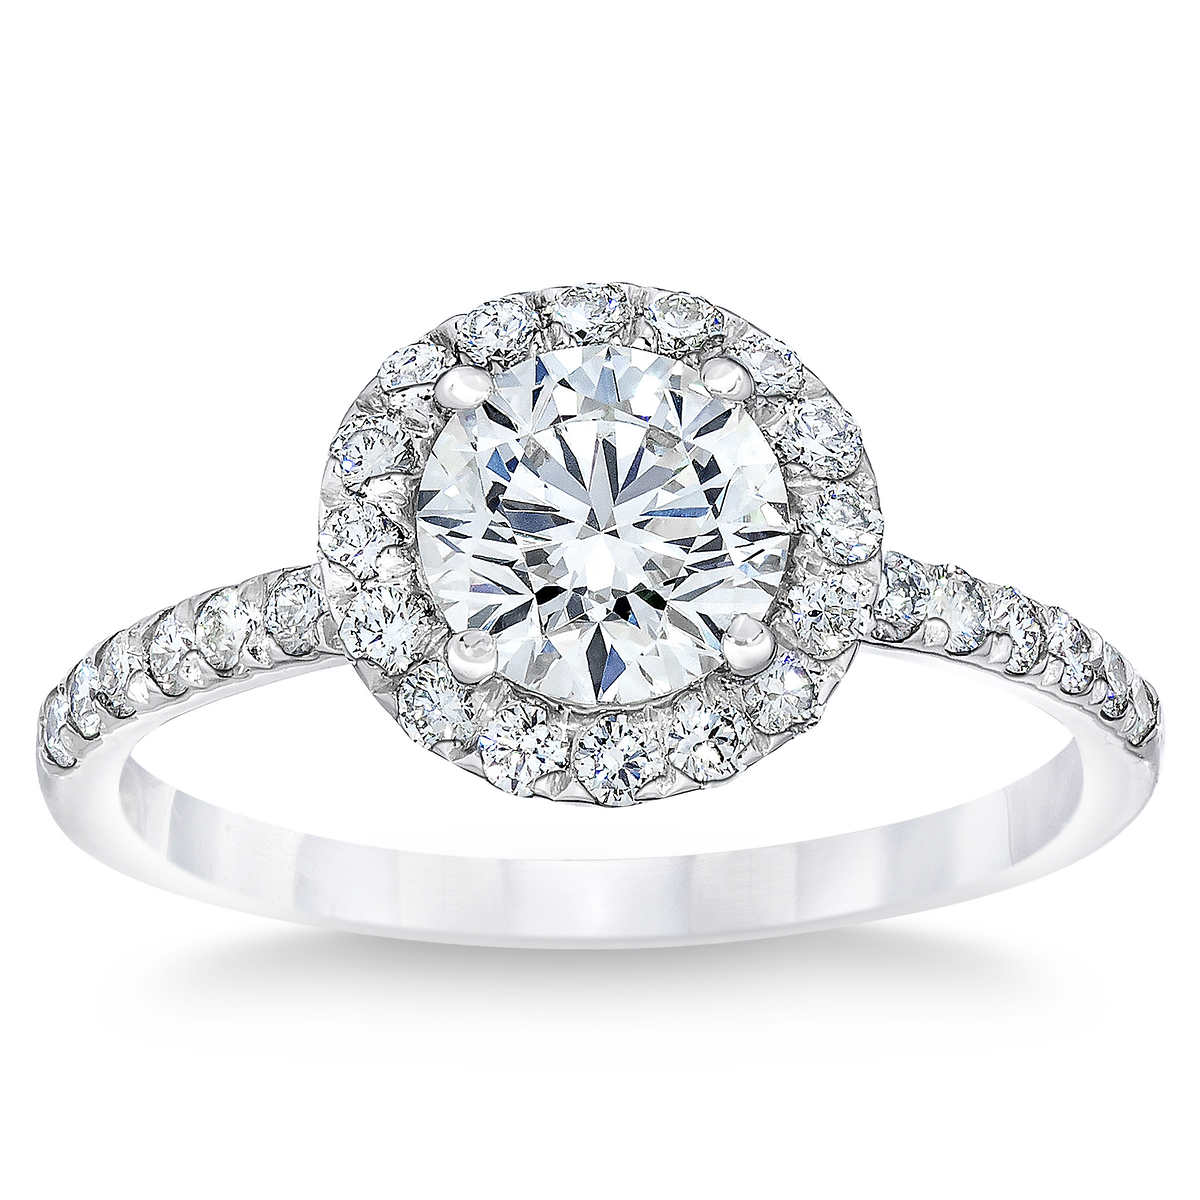 Round Brilliant 145 Ctw Vs2 Clarity, I Color Diamond Platinum Ring